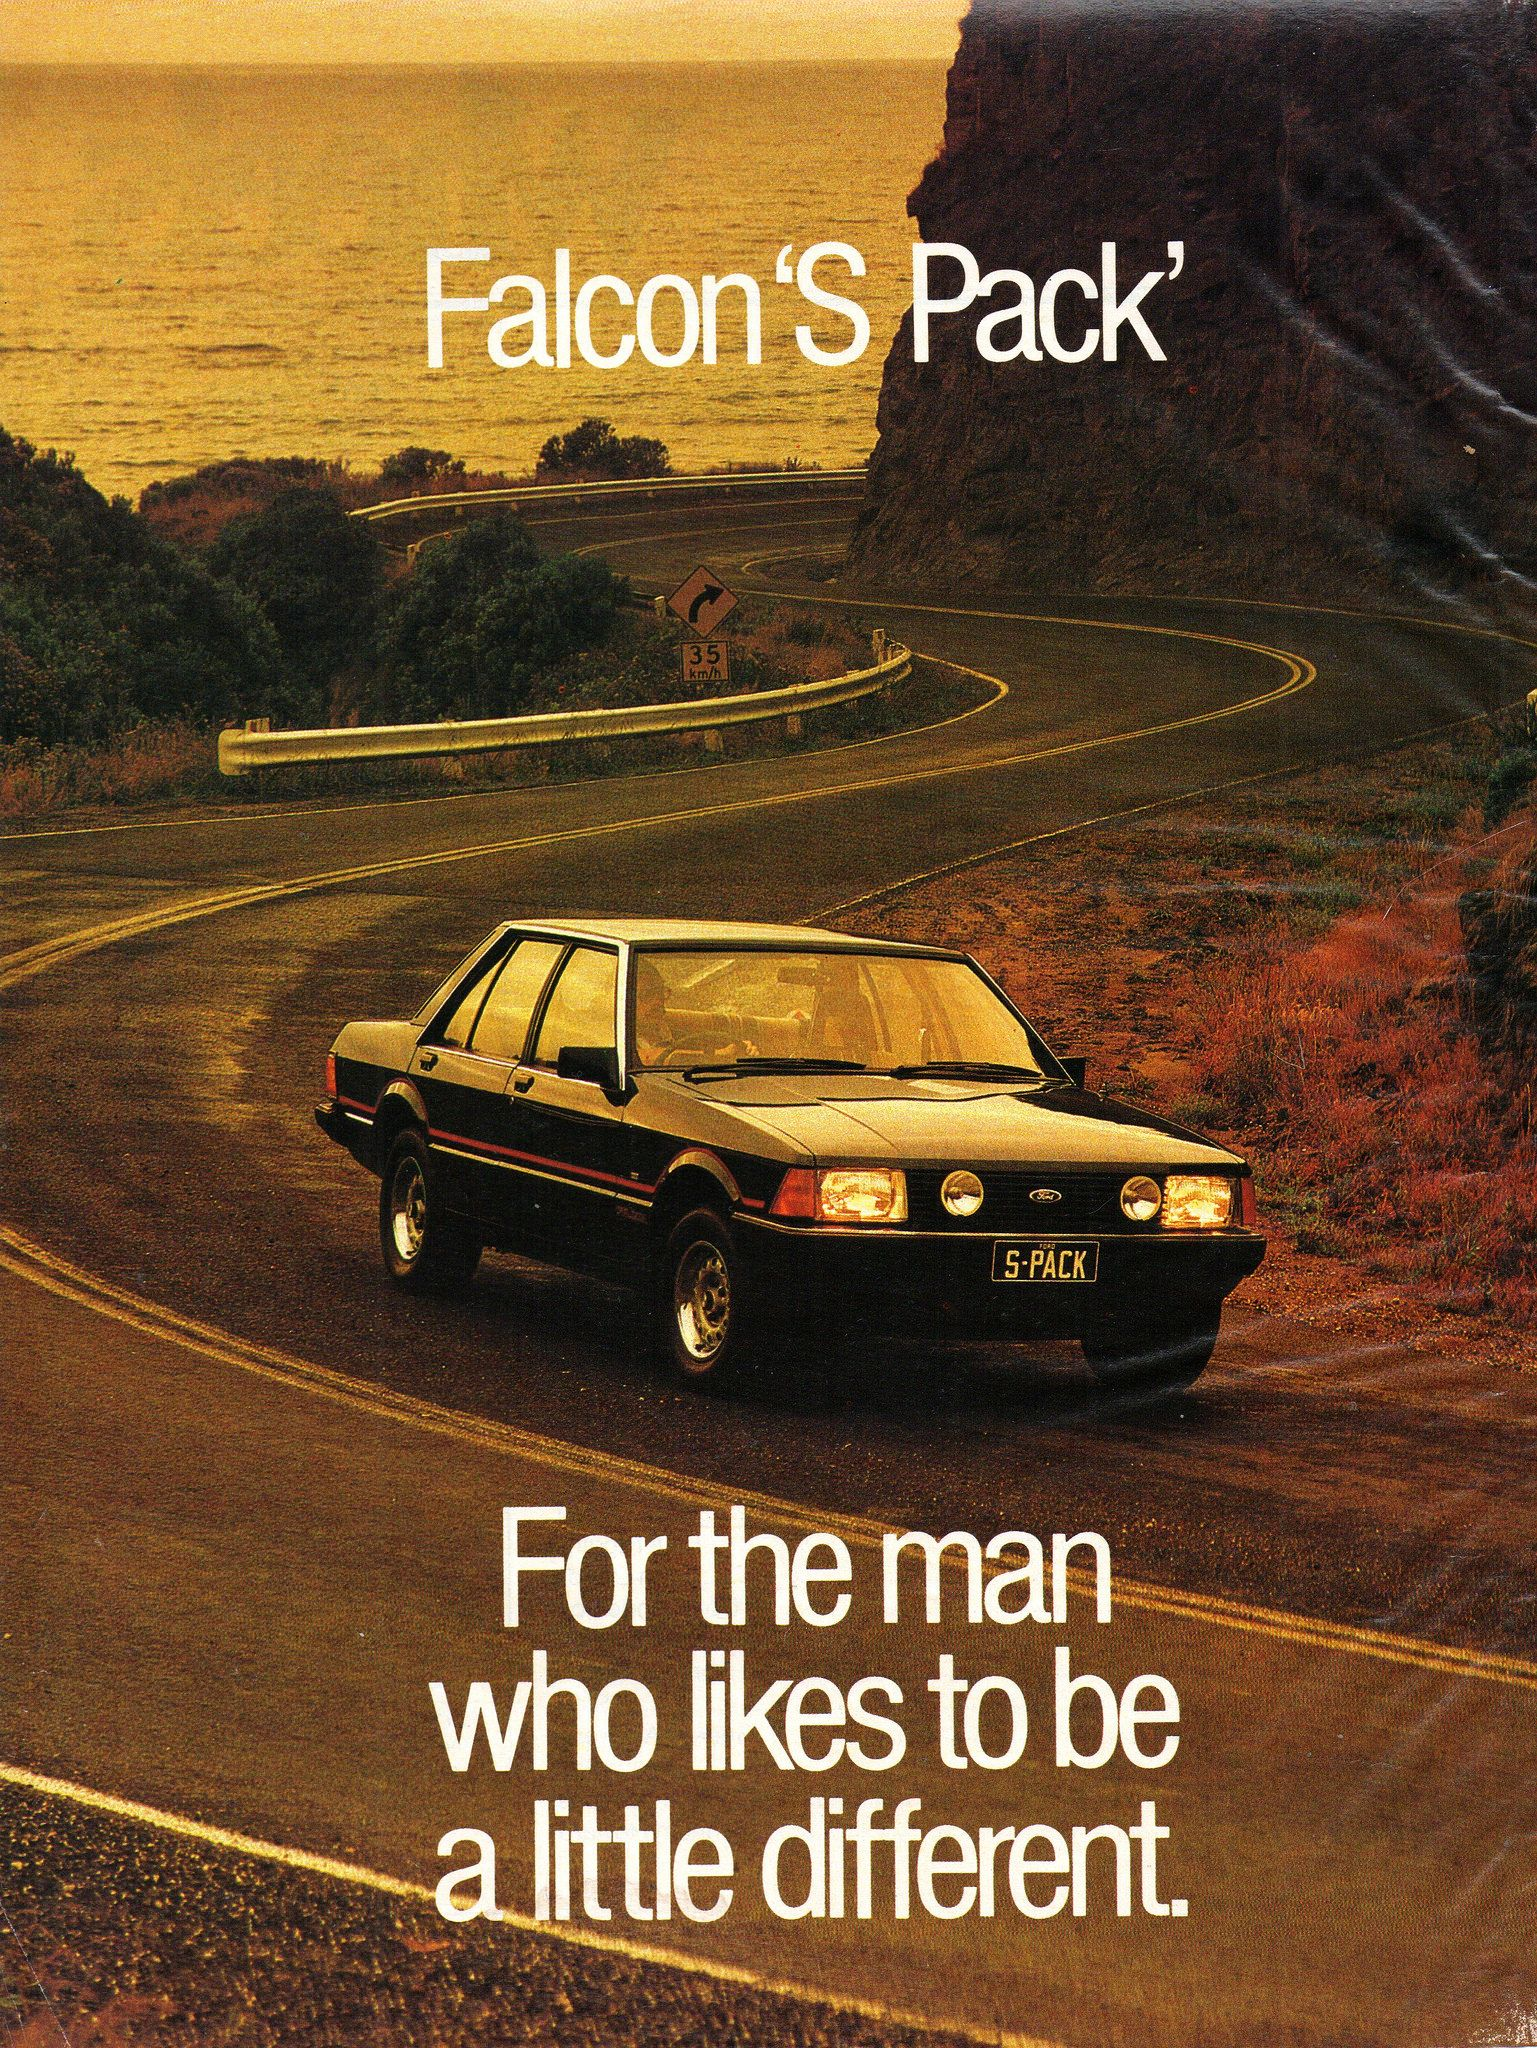 1981 Xd Ford Falcon S Pack 4 1 Litre Sedan Page 1 Aussie Original Magazine Advertisment Ford Falcon Ford Racing Australian Cars